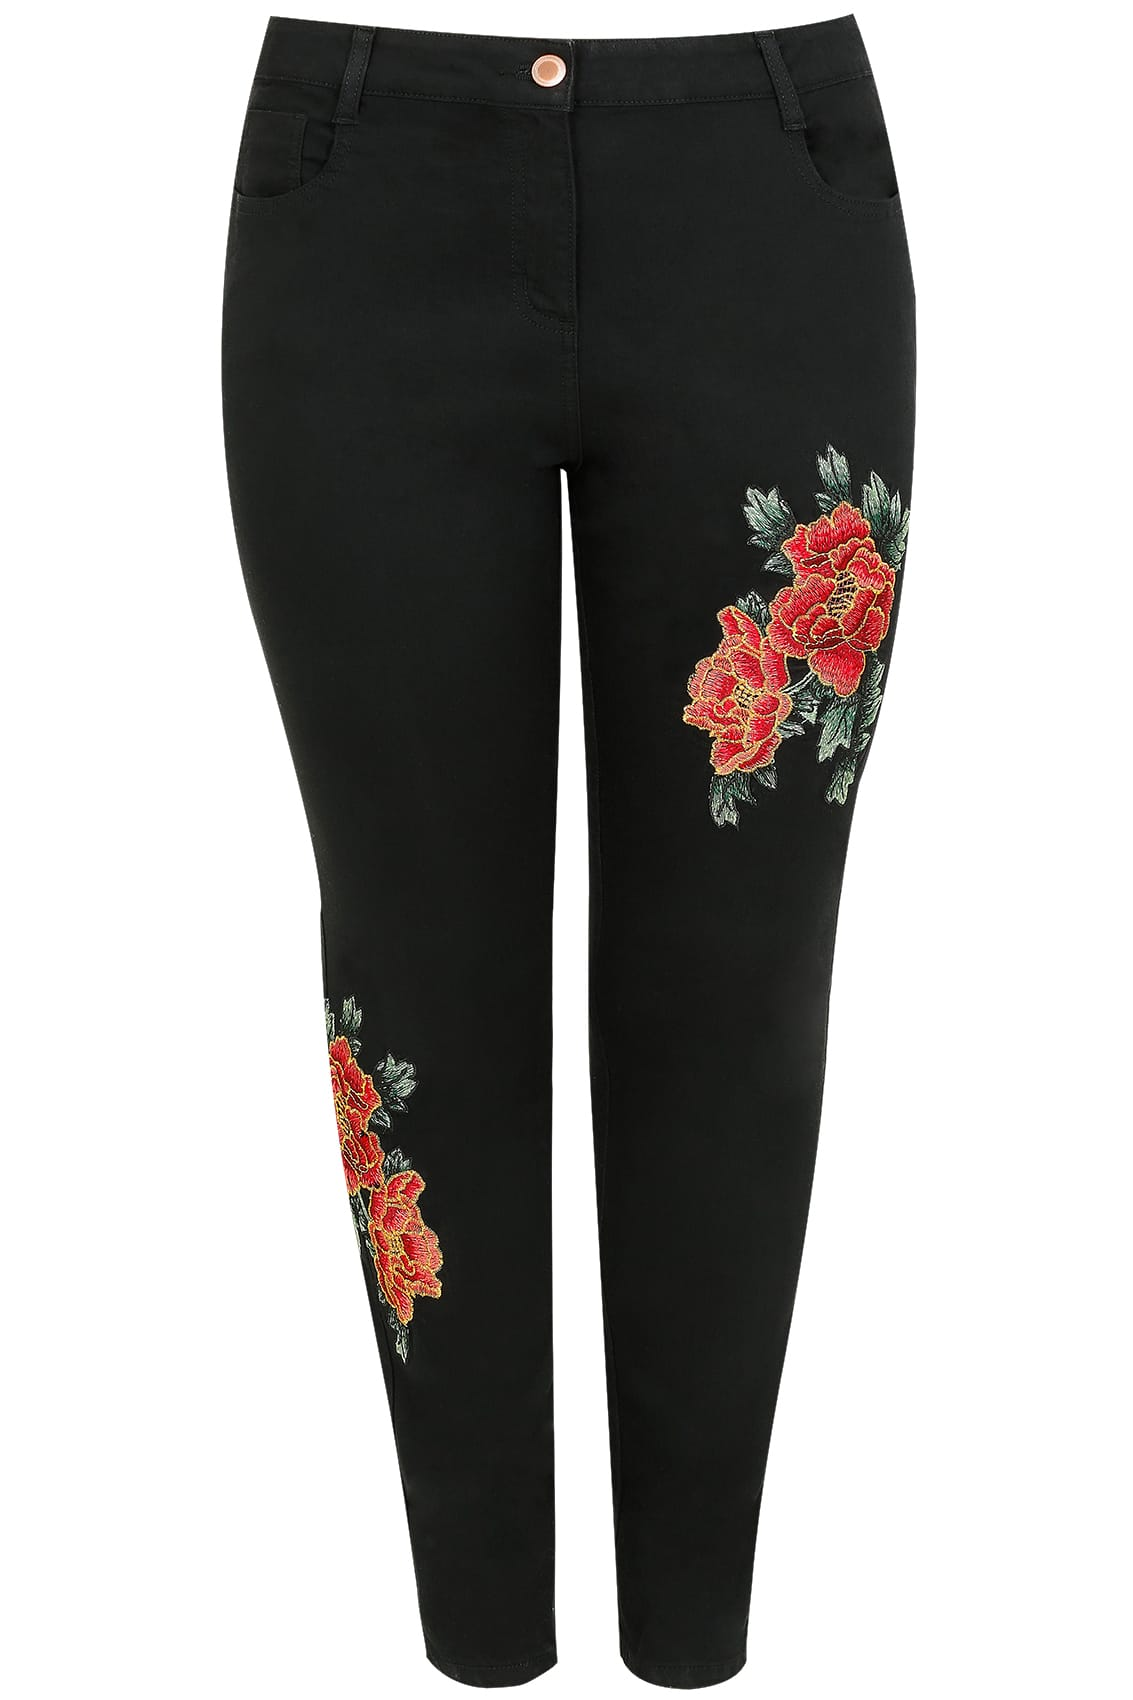 You searched for: embroidered jeans! Etsy is the home to thousands of handmade, vintage, and one-of-a-kind products and gifts related to your search. No matter what you're looking for or where you are in the world, our global marketplace of sellers can help you find unique and affordable options. Let's get started!